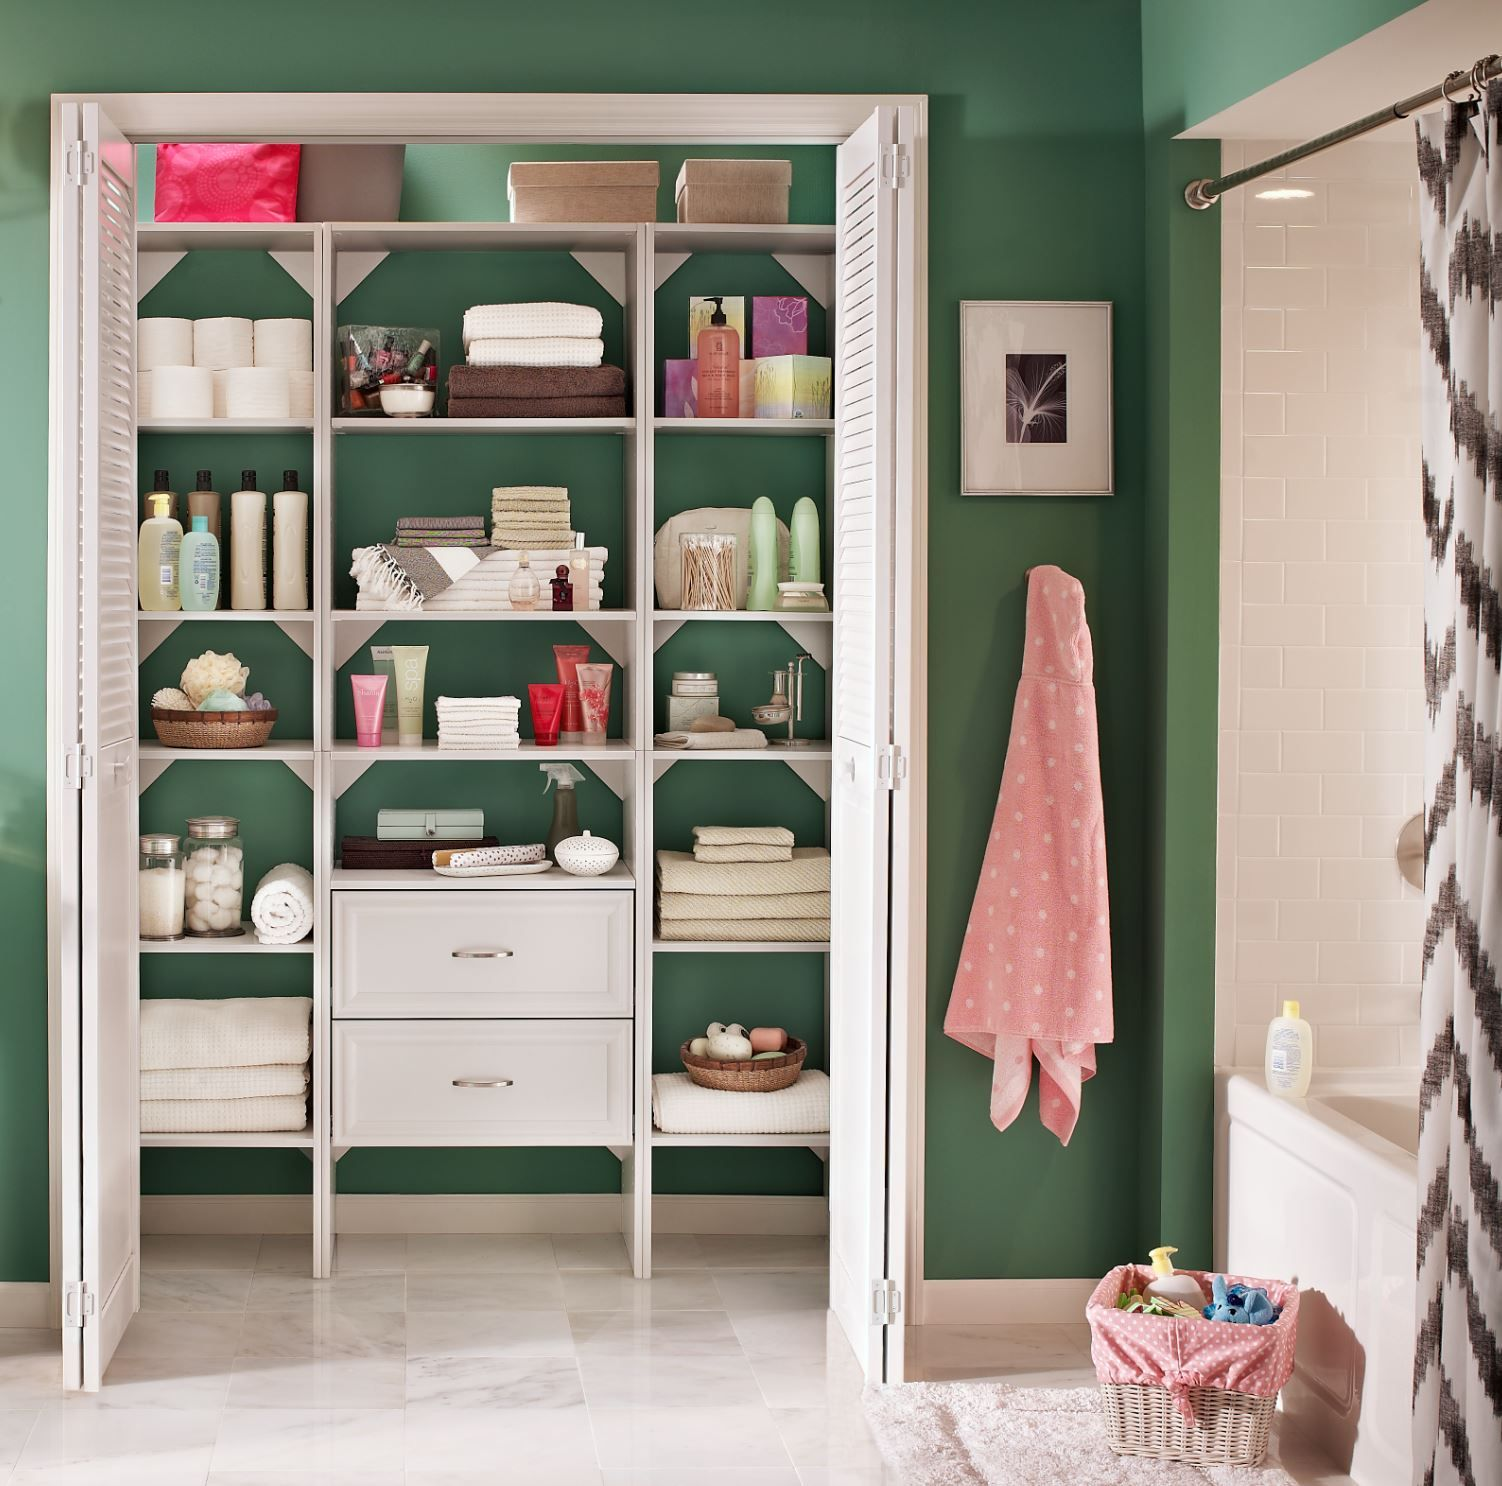 Need Your Linen Closet To Work Harder For You Add A Selectives Organizer From Homedepot Closetmaid Linen Closet Storage Linen Closet Design Linen Closet